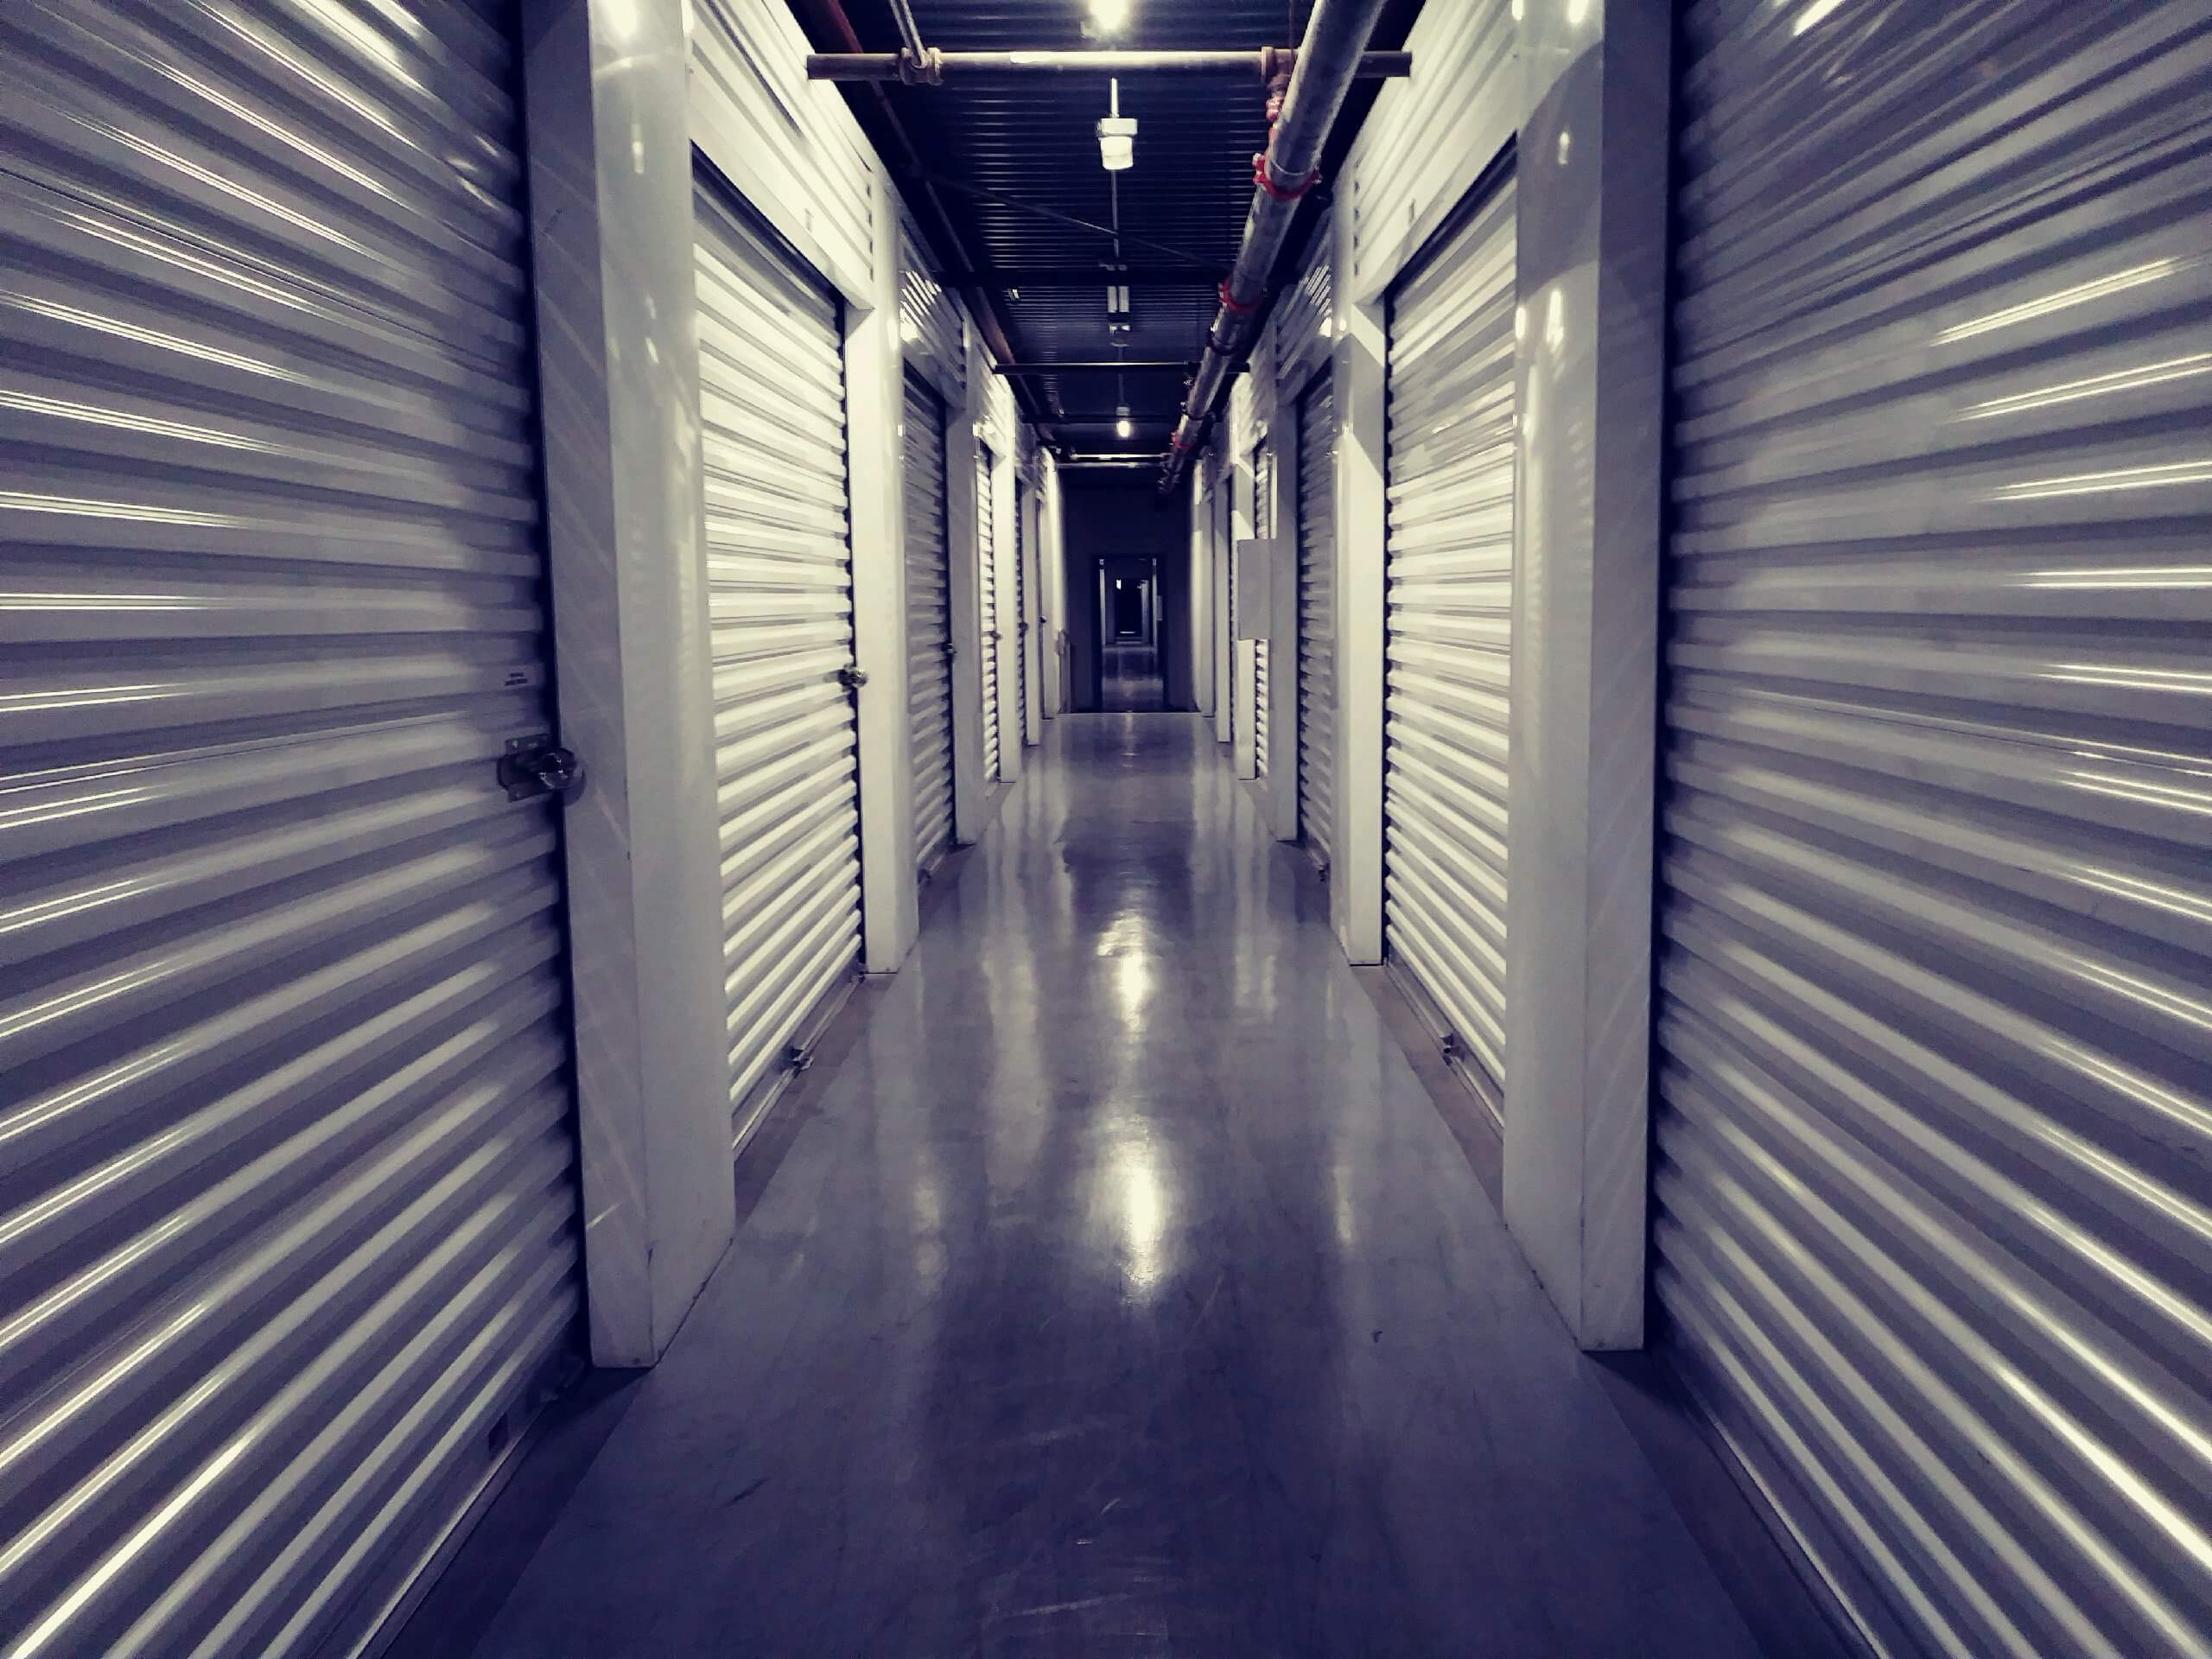 Inside row of storage units at Smart Stop self storage facility located at 4349 South Jones Blvd., Las Vegas Nevada